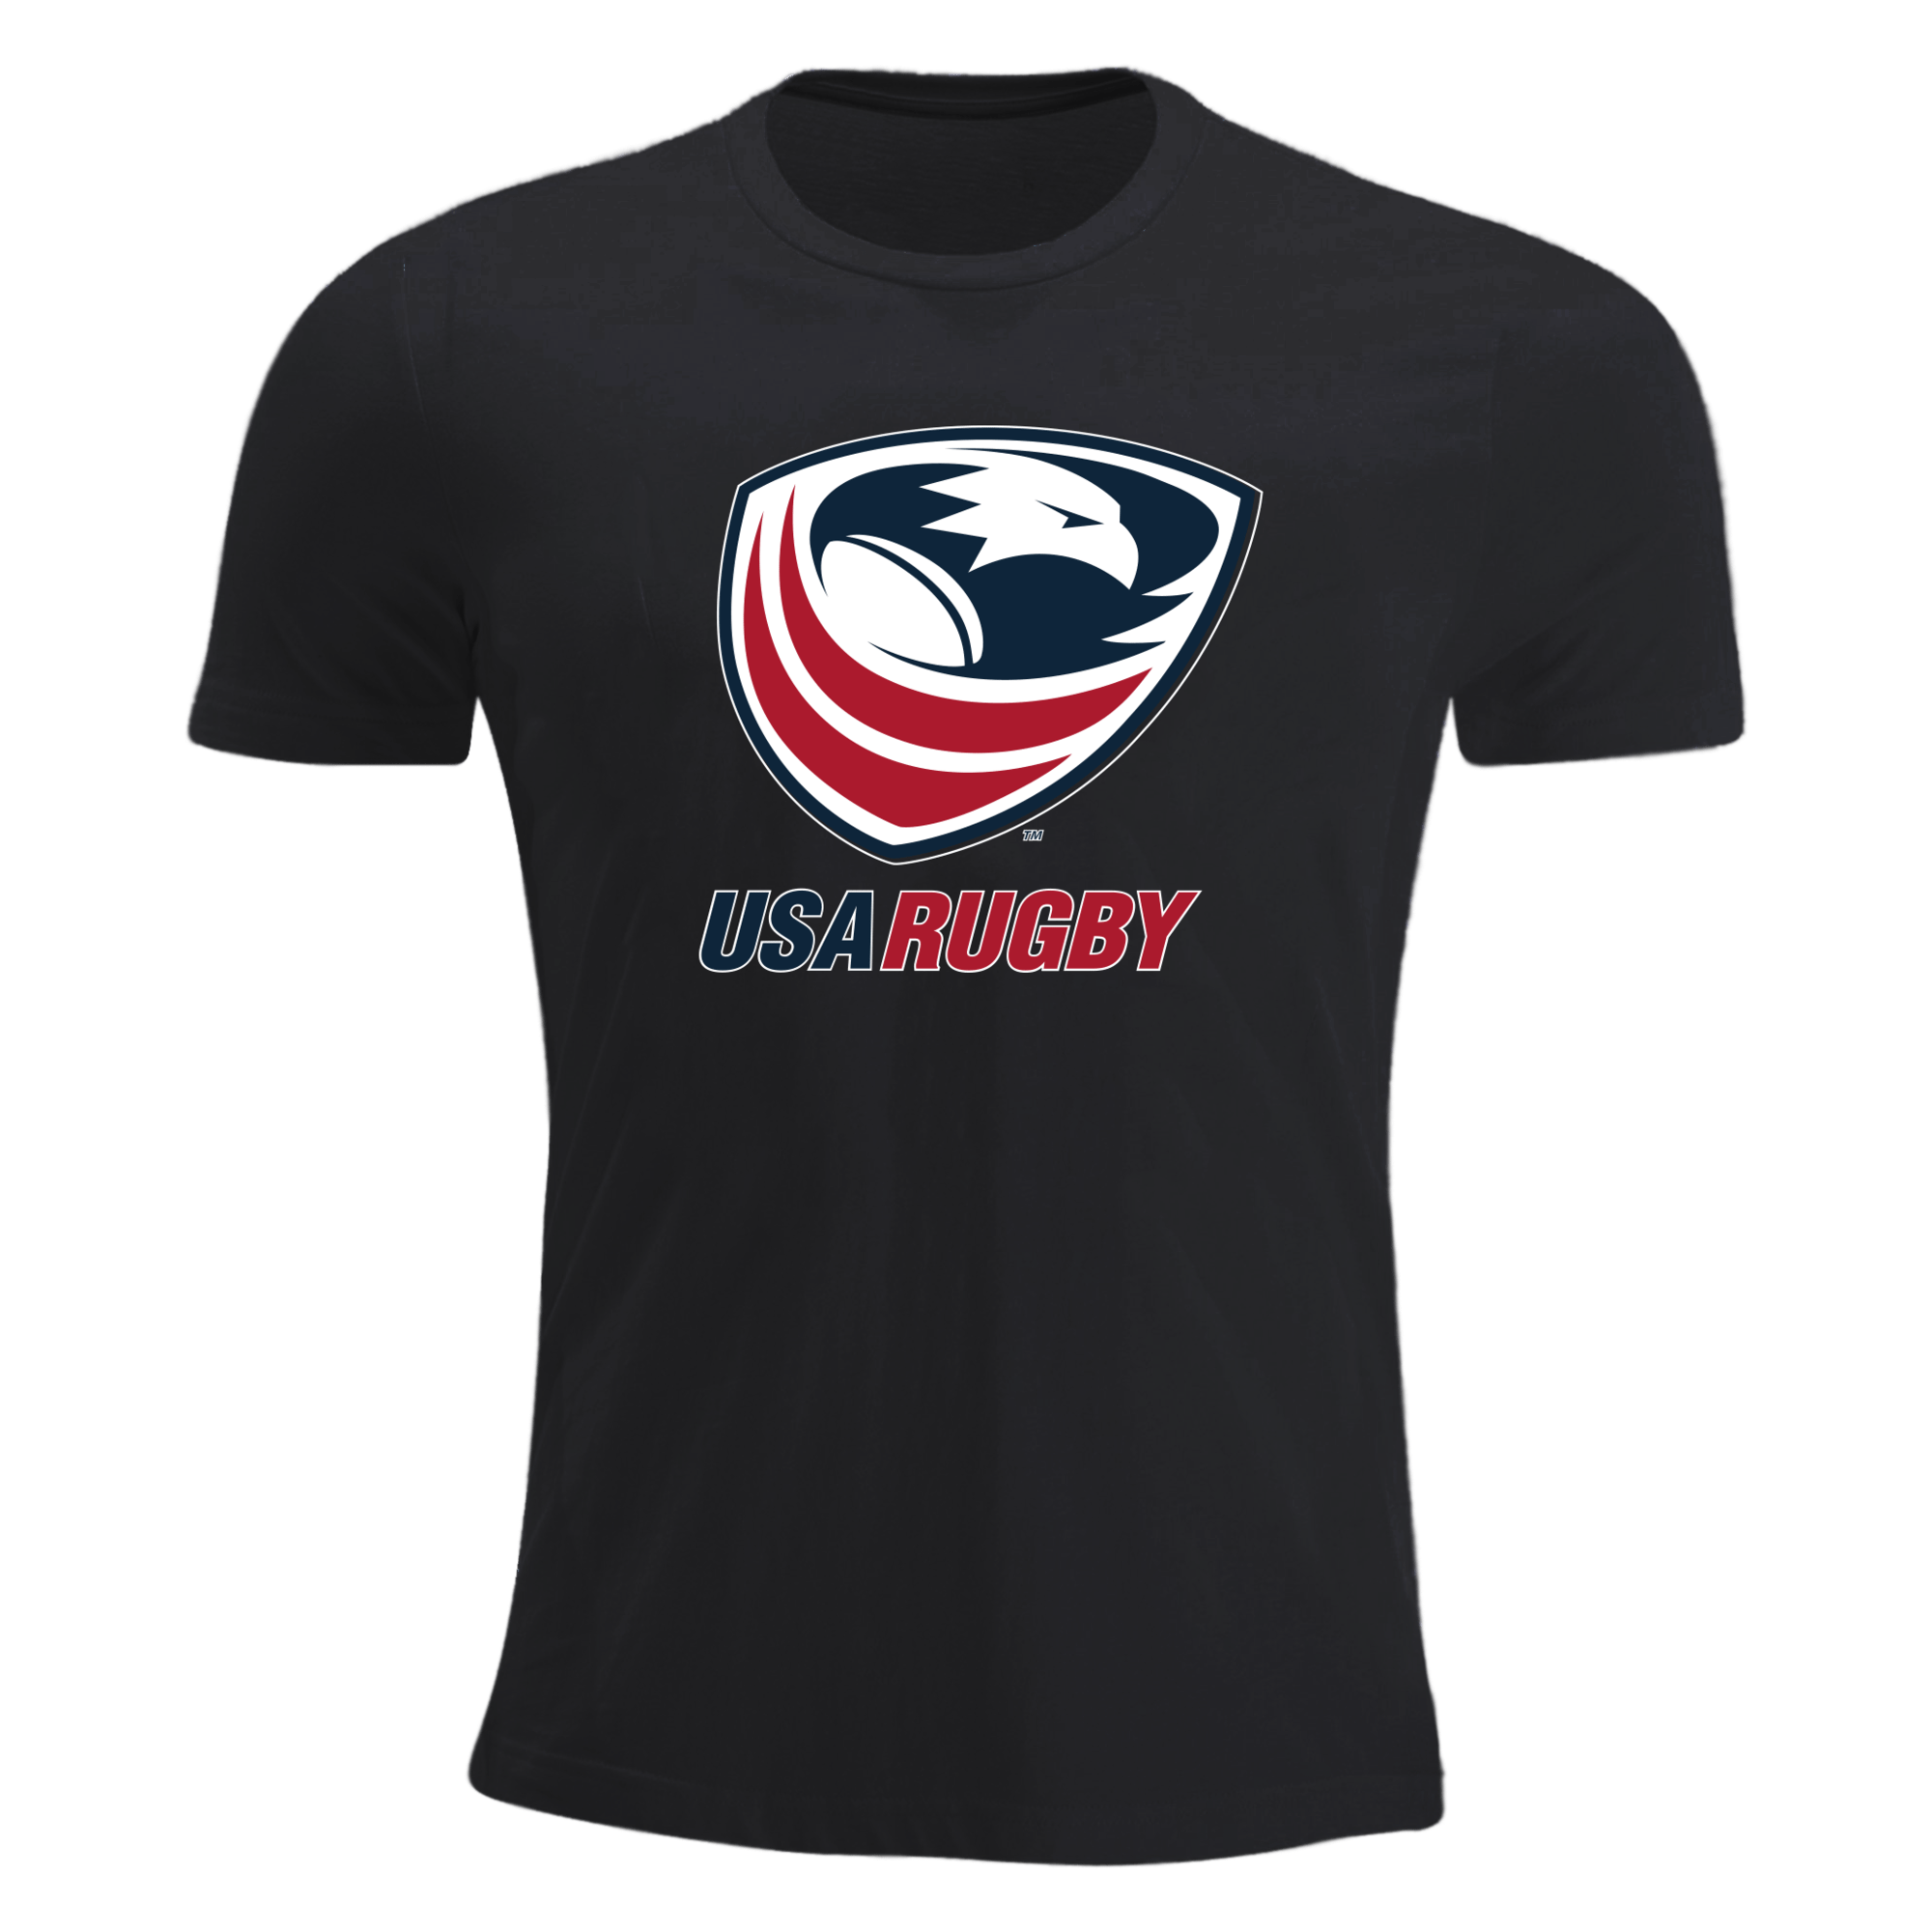 USA Rugby Short-Sleeve T-Shirt Black